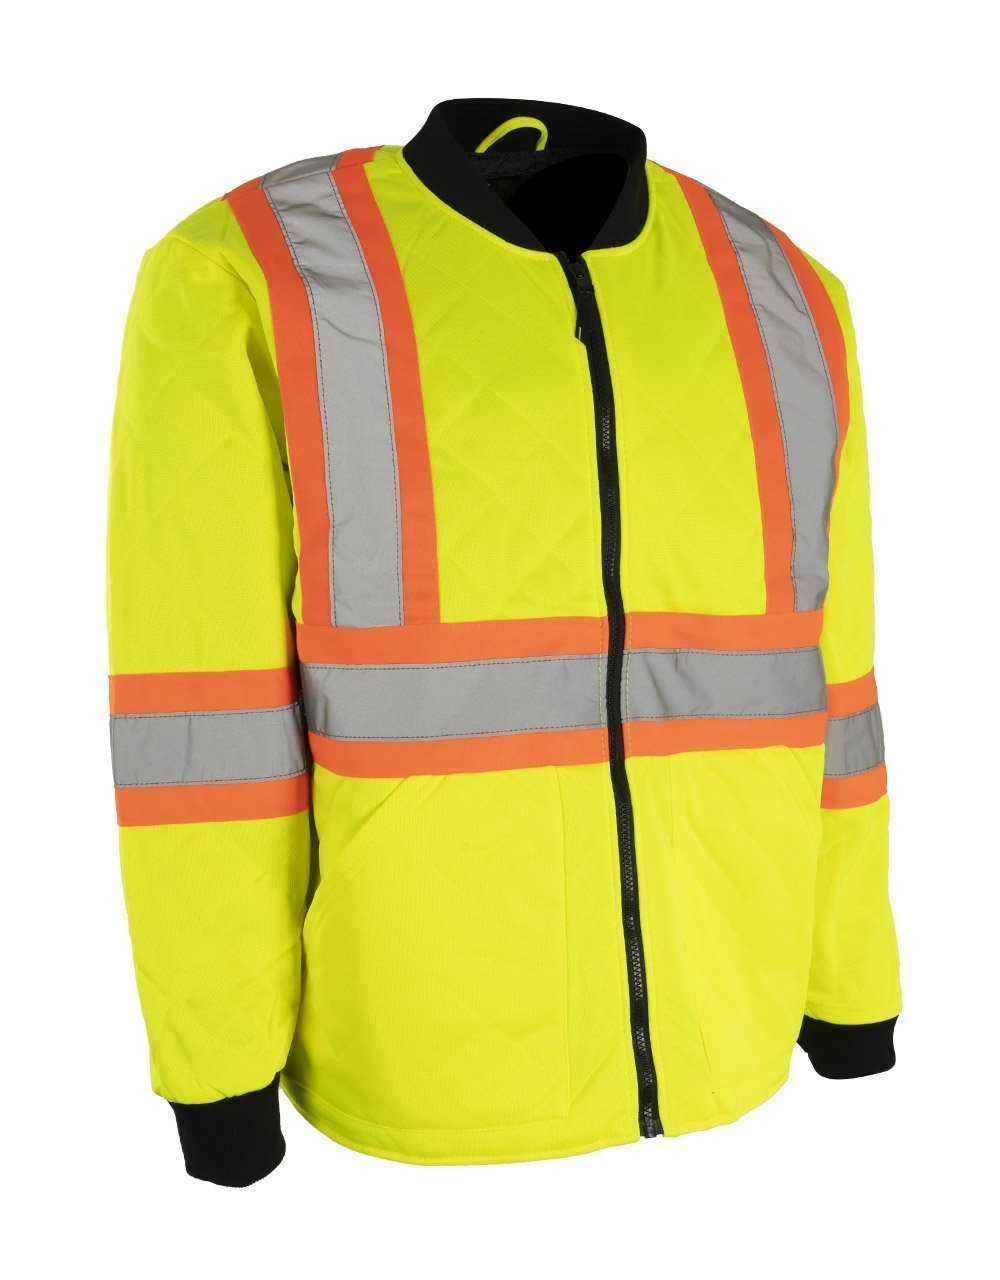 Forcefield Hi-Vis Safety Freezer Jacket 024-FJQLY